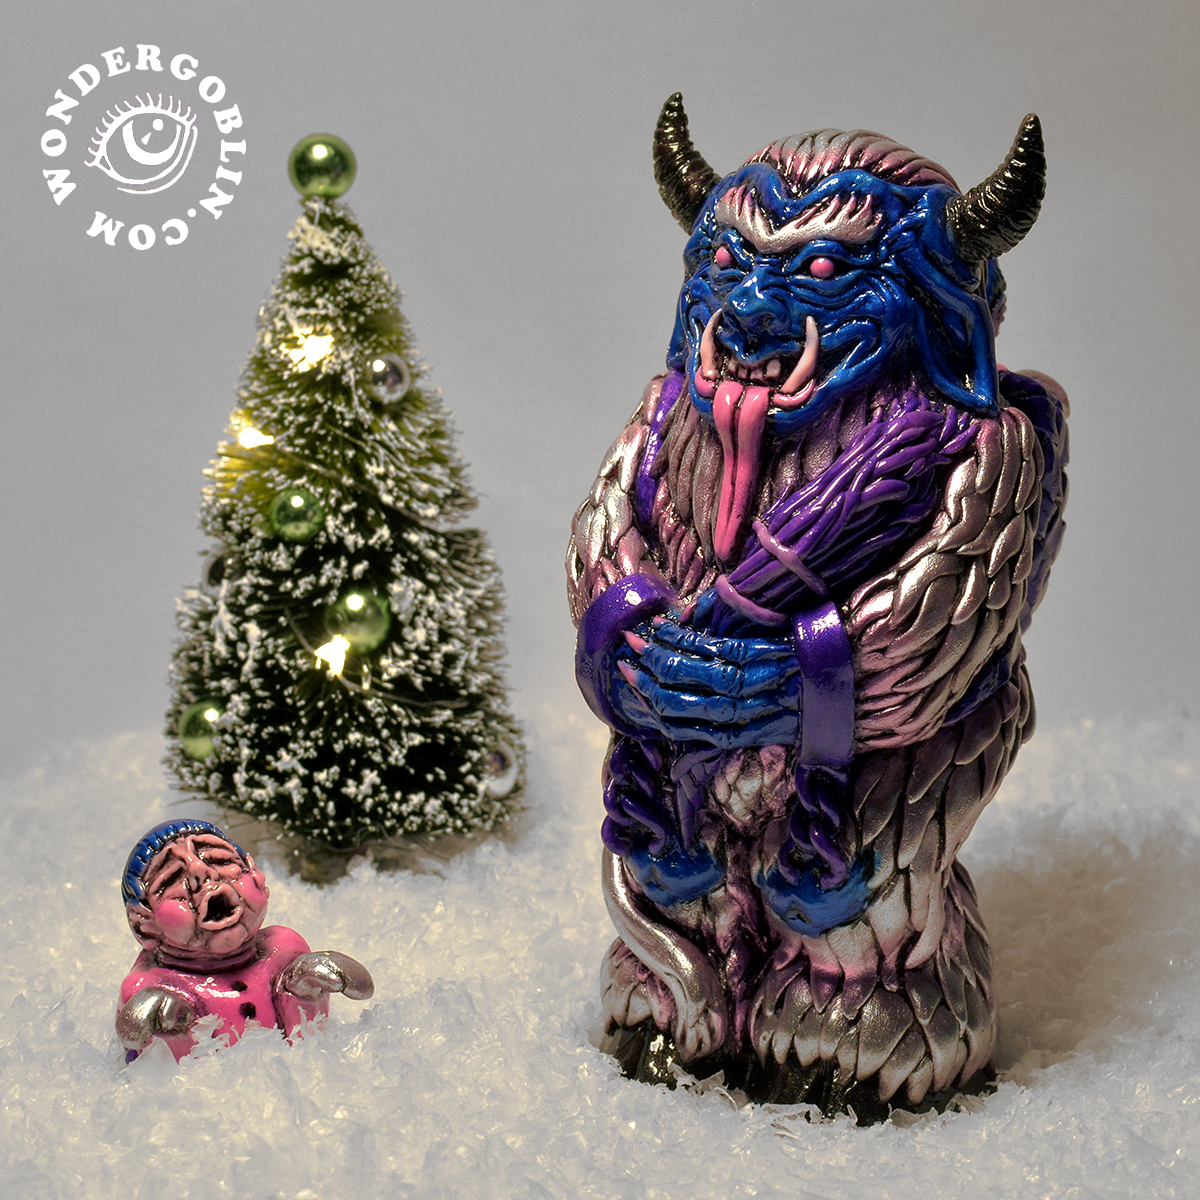 """Are you still searching for the perfect Yule, Xmas, or Krampusnacht present? Look no further, for the Krampus has come to town, and he doesn't care whether you've been naughty or nice! Cast in solid resin, and each one meticulously hand painted and airbrushed, the Krampus stands at 6 inches tall and comes with a removable brat. Included with every order is a """"Merry Krampus""""   greeting card and a handful of Xmas candy. Limited edition of 35."""